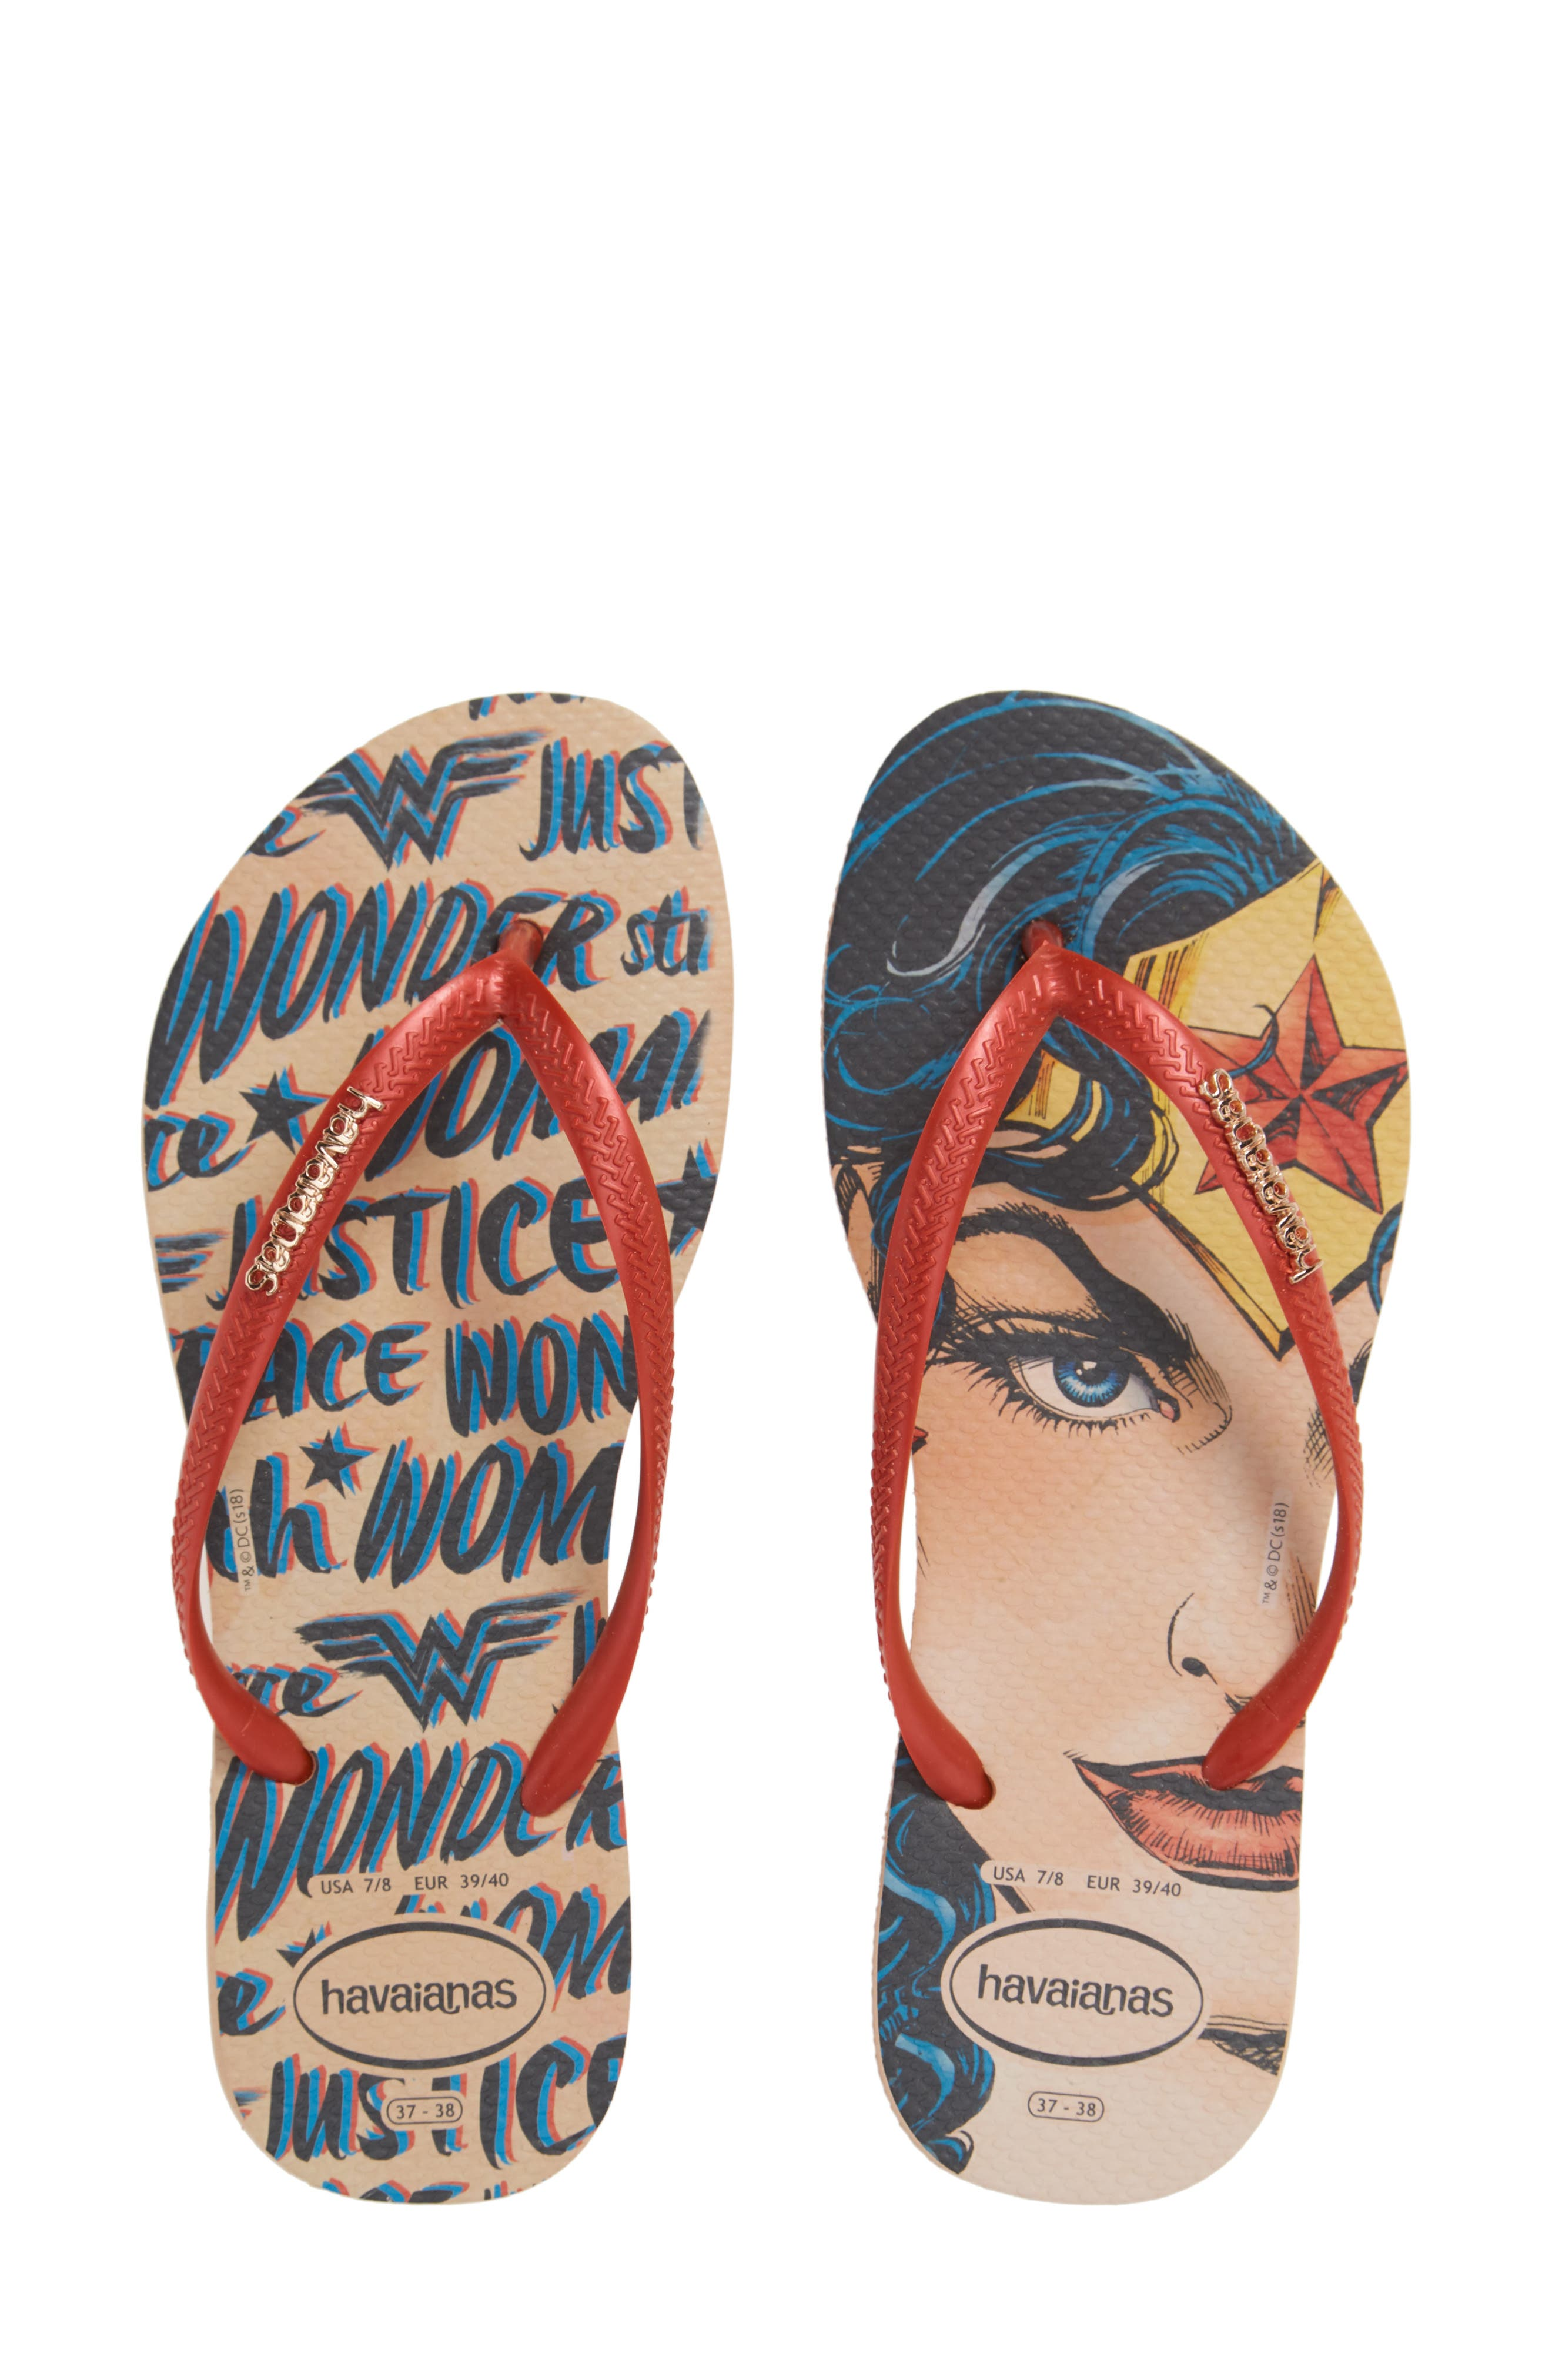 760869c3fef2 Havaianas Wear to Where  Looks for Every Occasion for Women